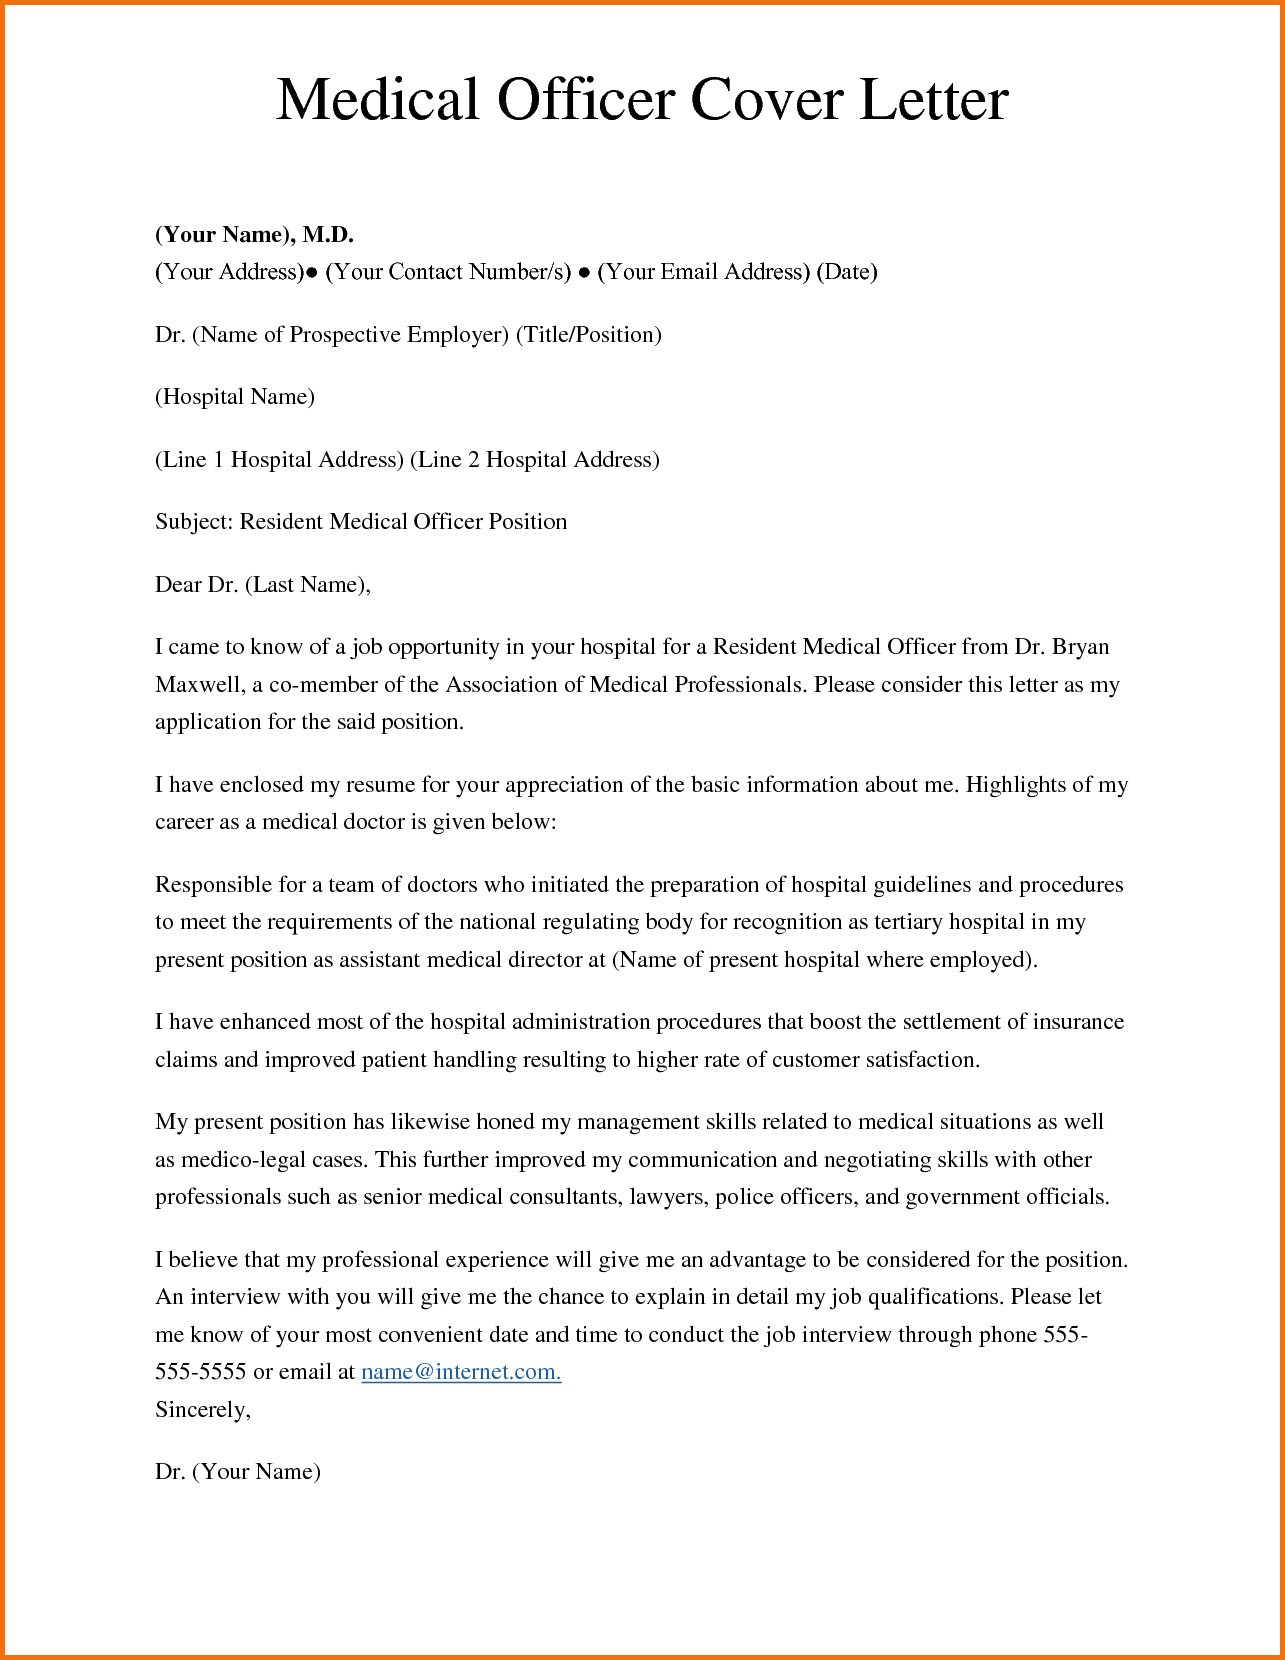 Addendum to Offer Letter Template - Awesome Application Letter Sample format 12th Amendment